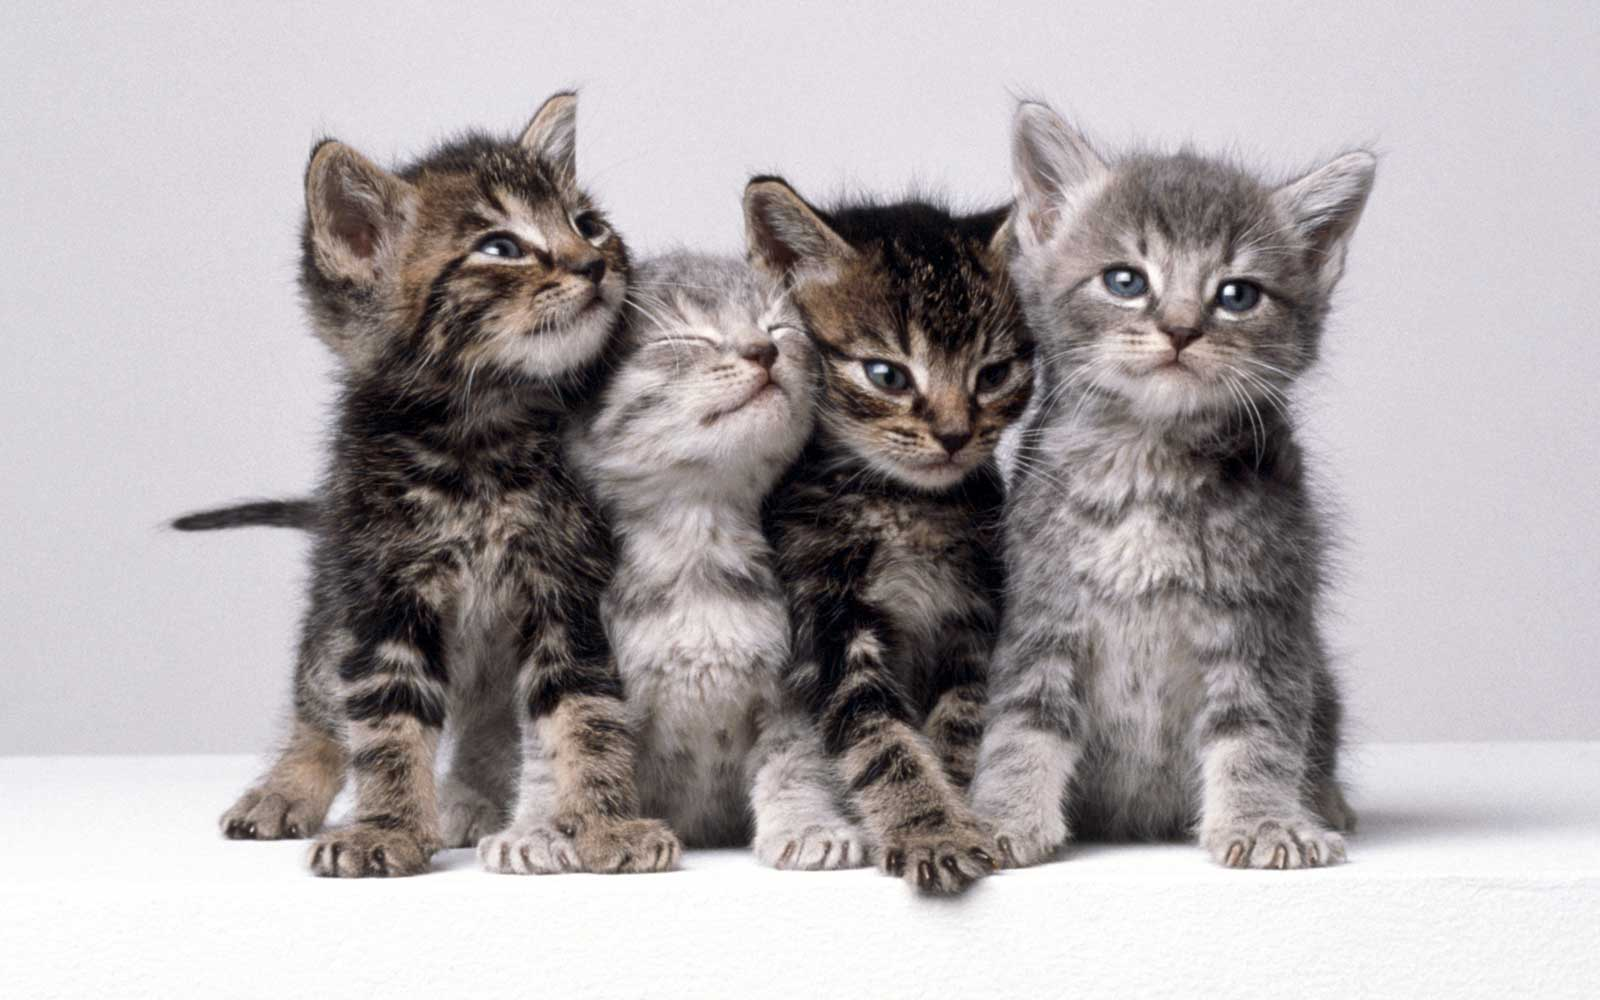 Four gray kittens on a gray background